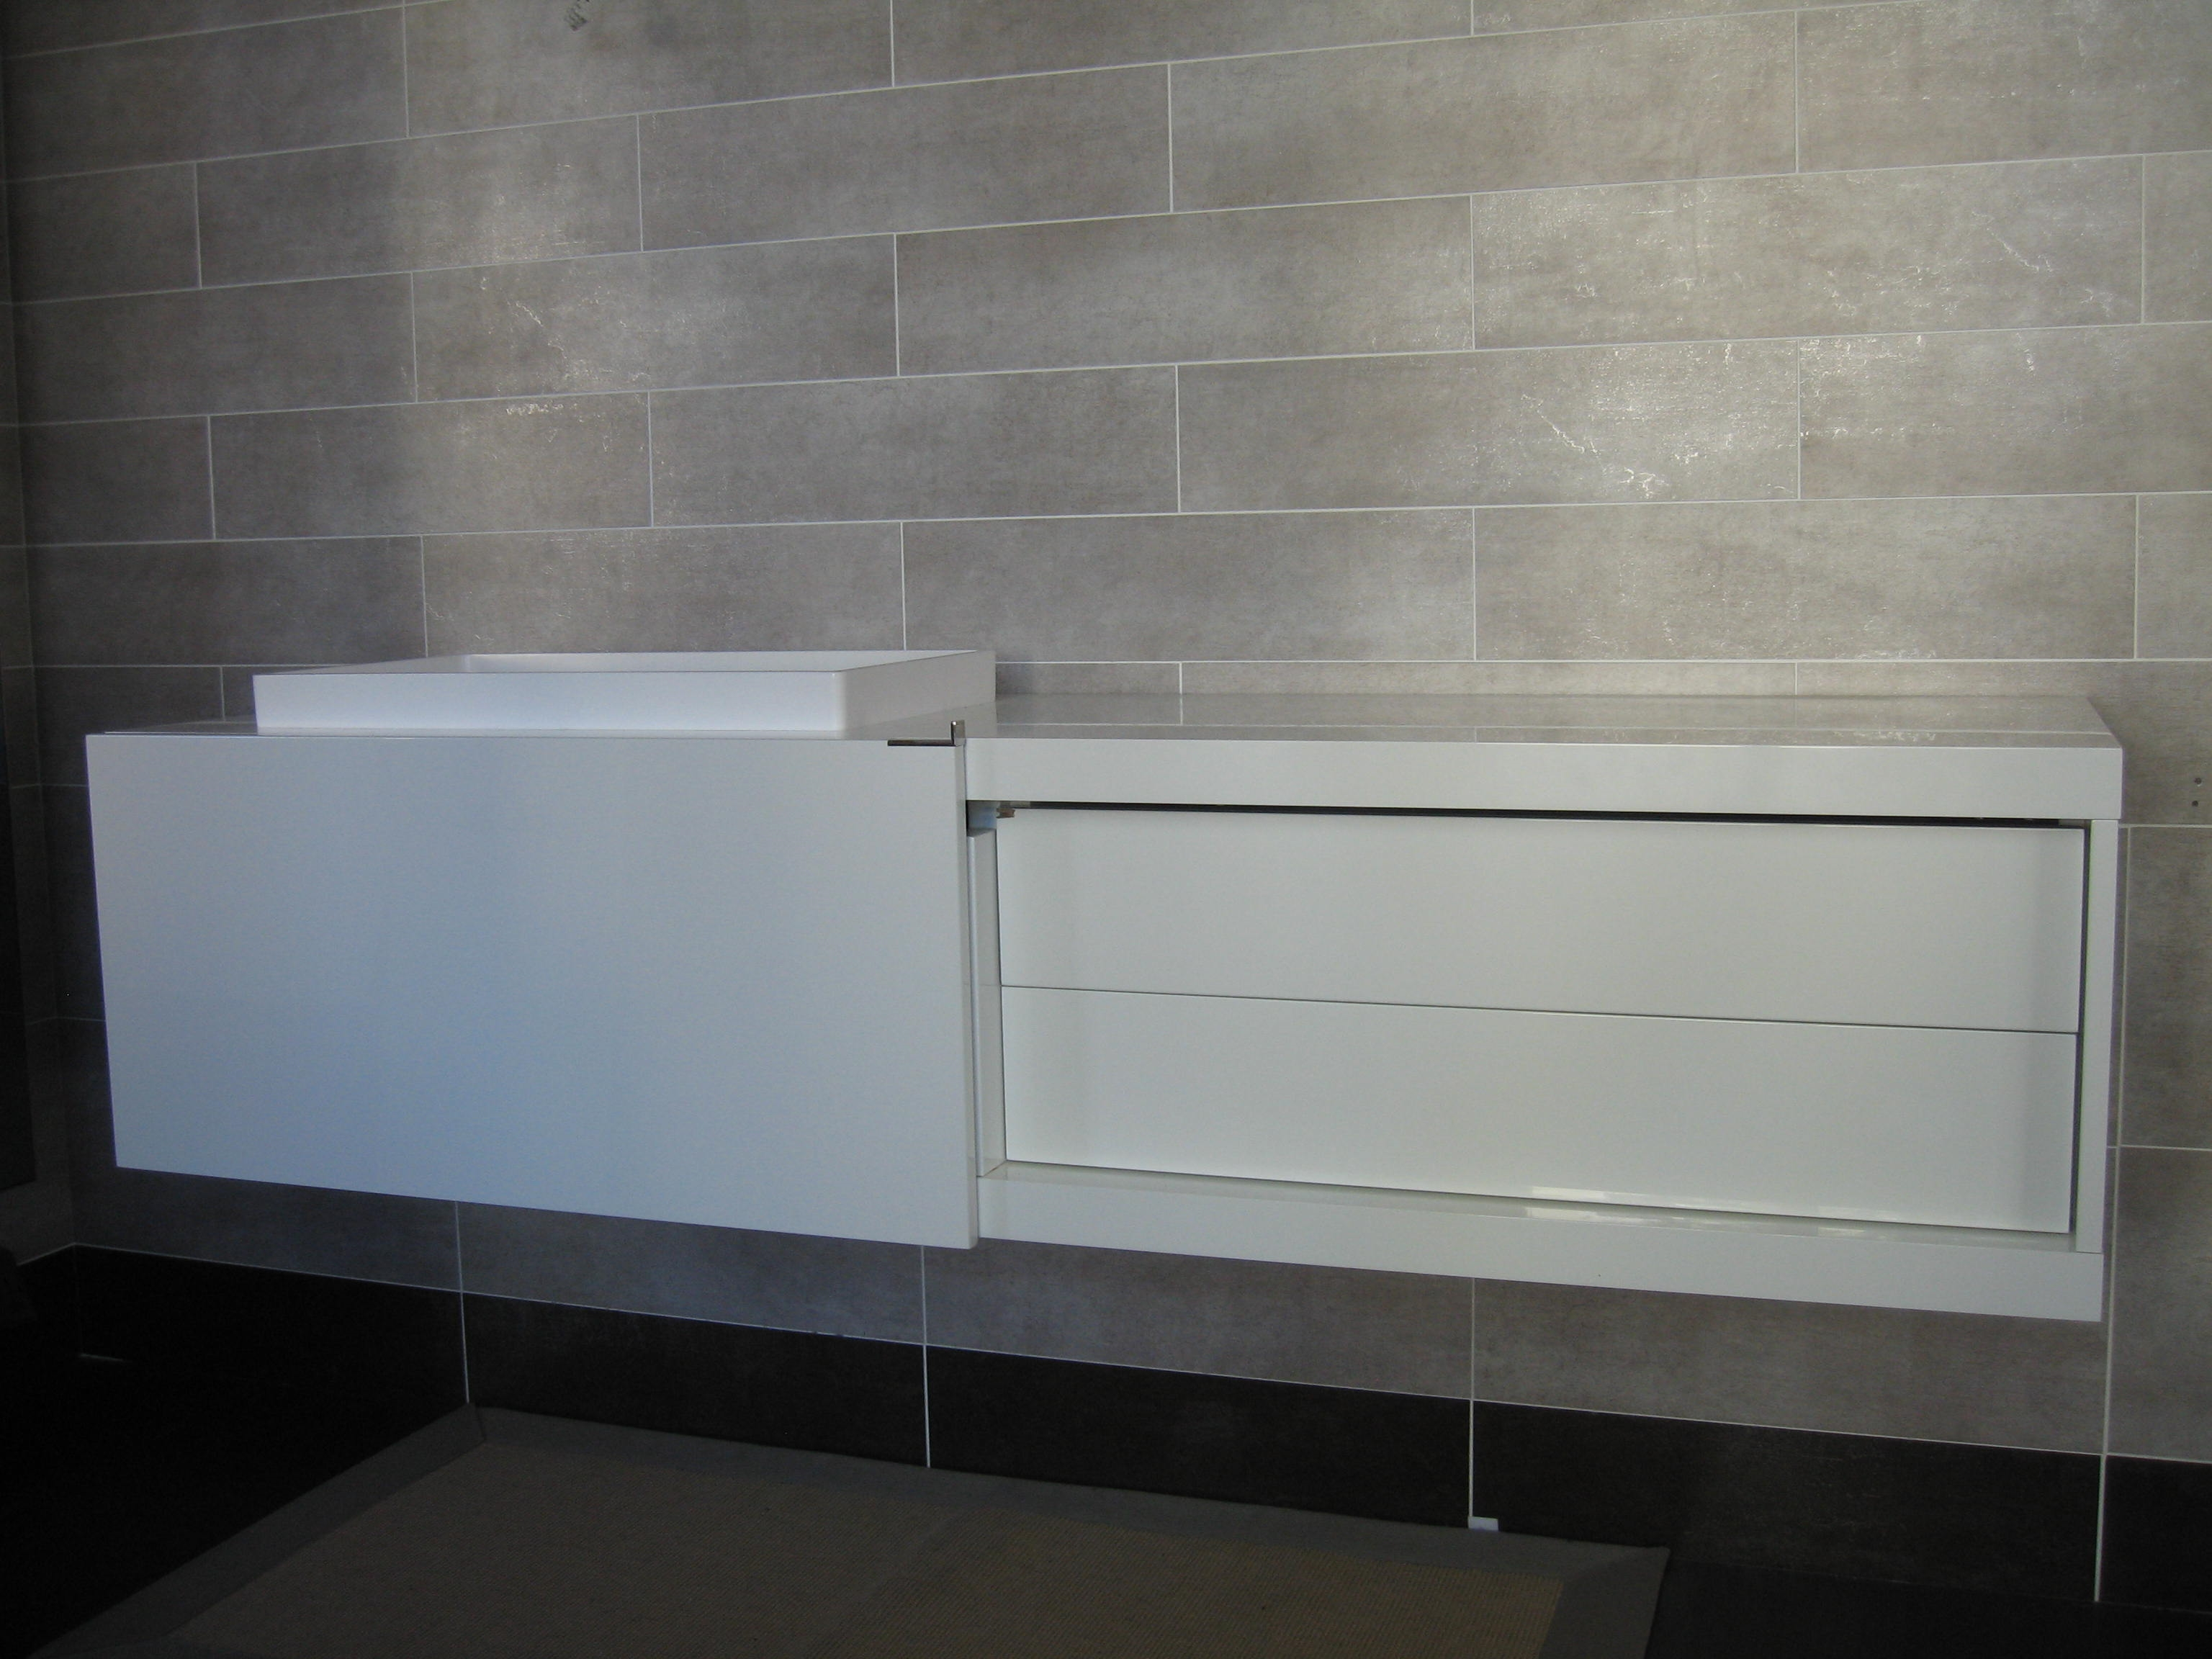 Mobile bagno ~ avienix.com for .